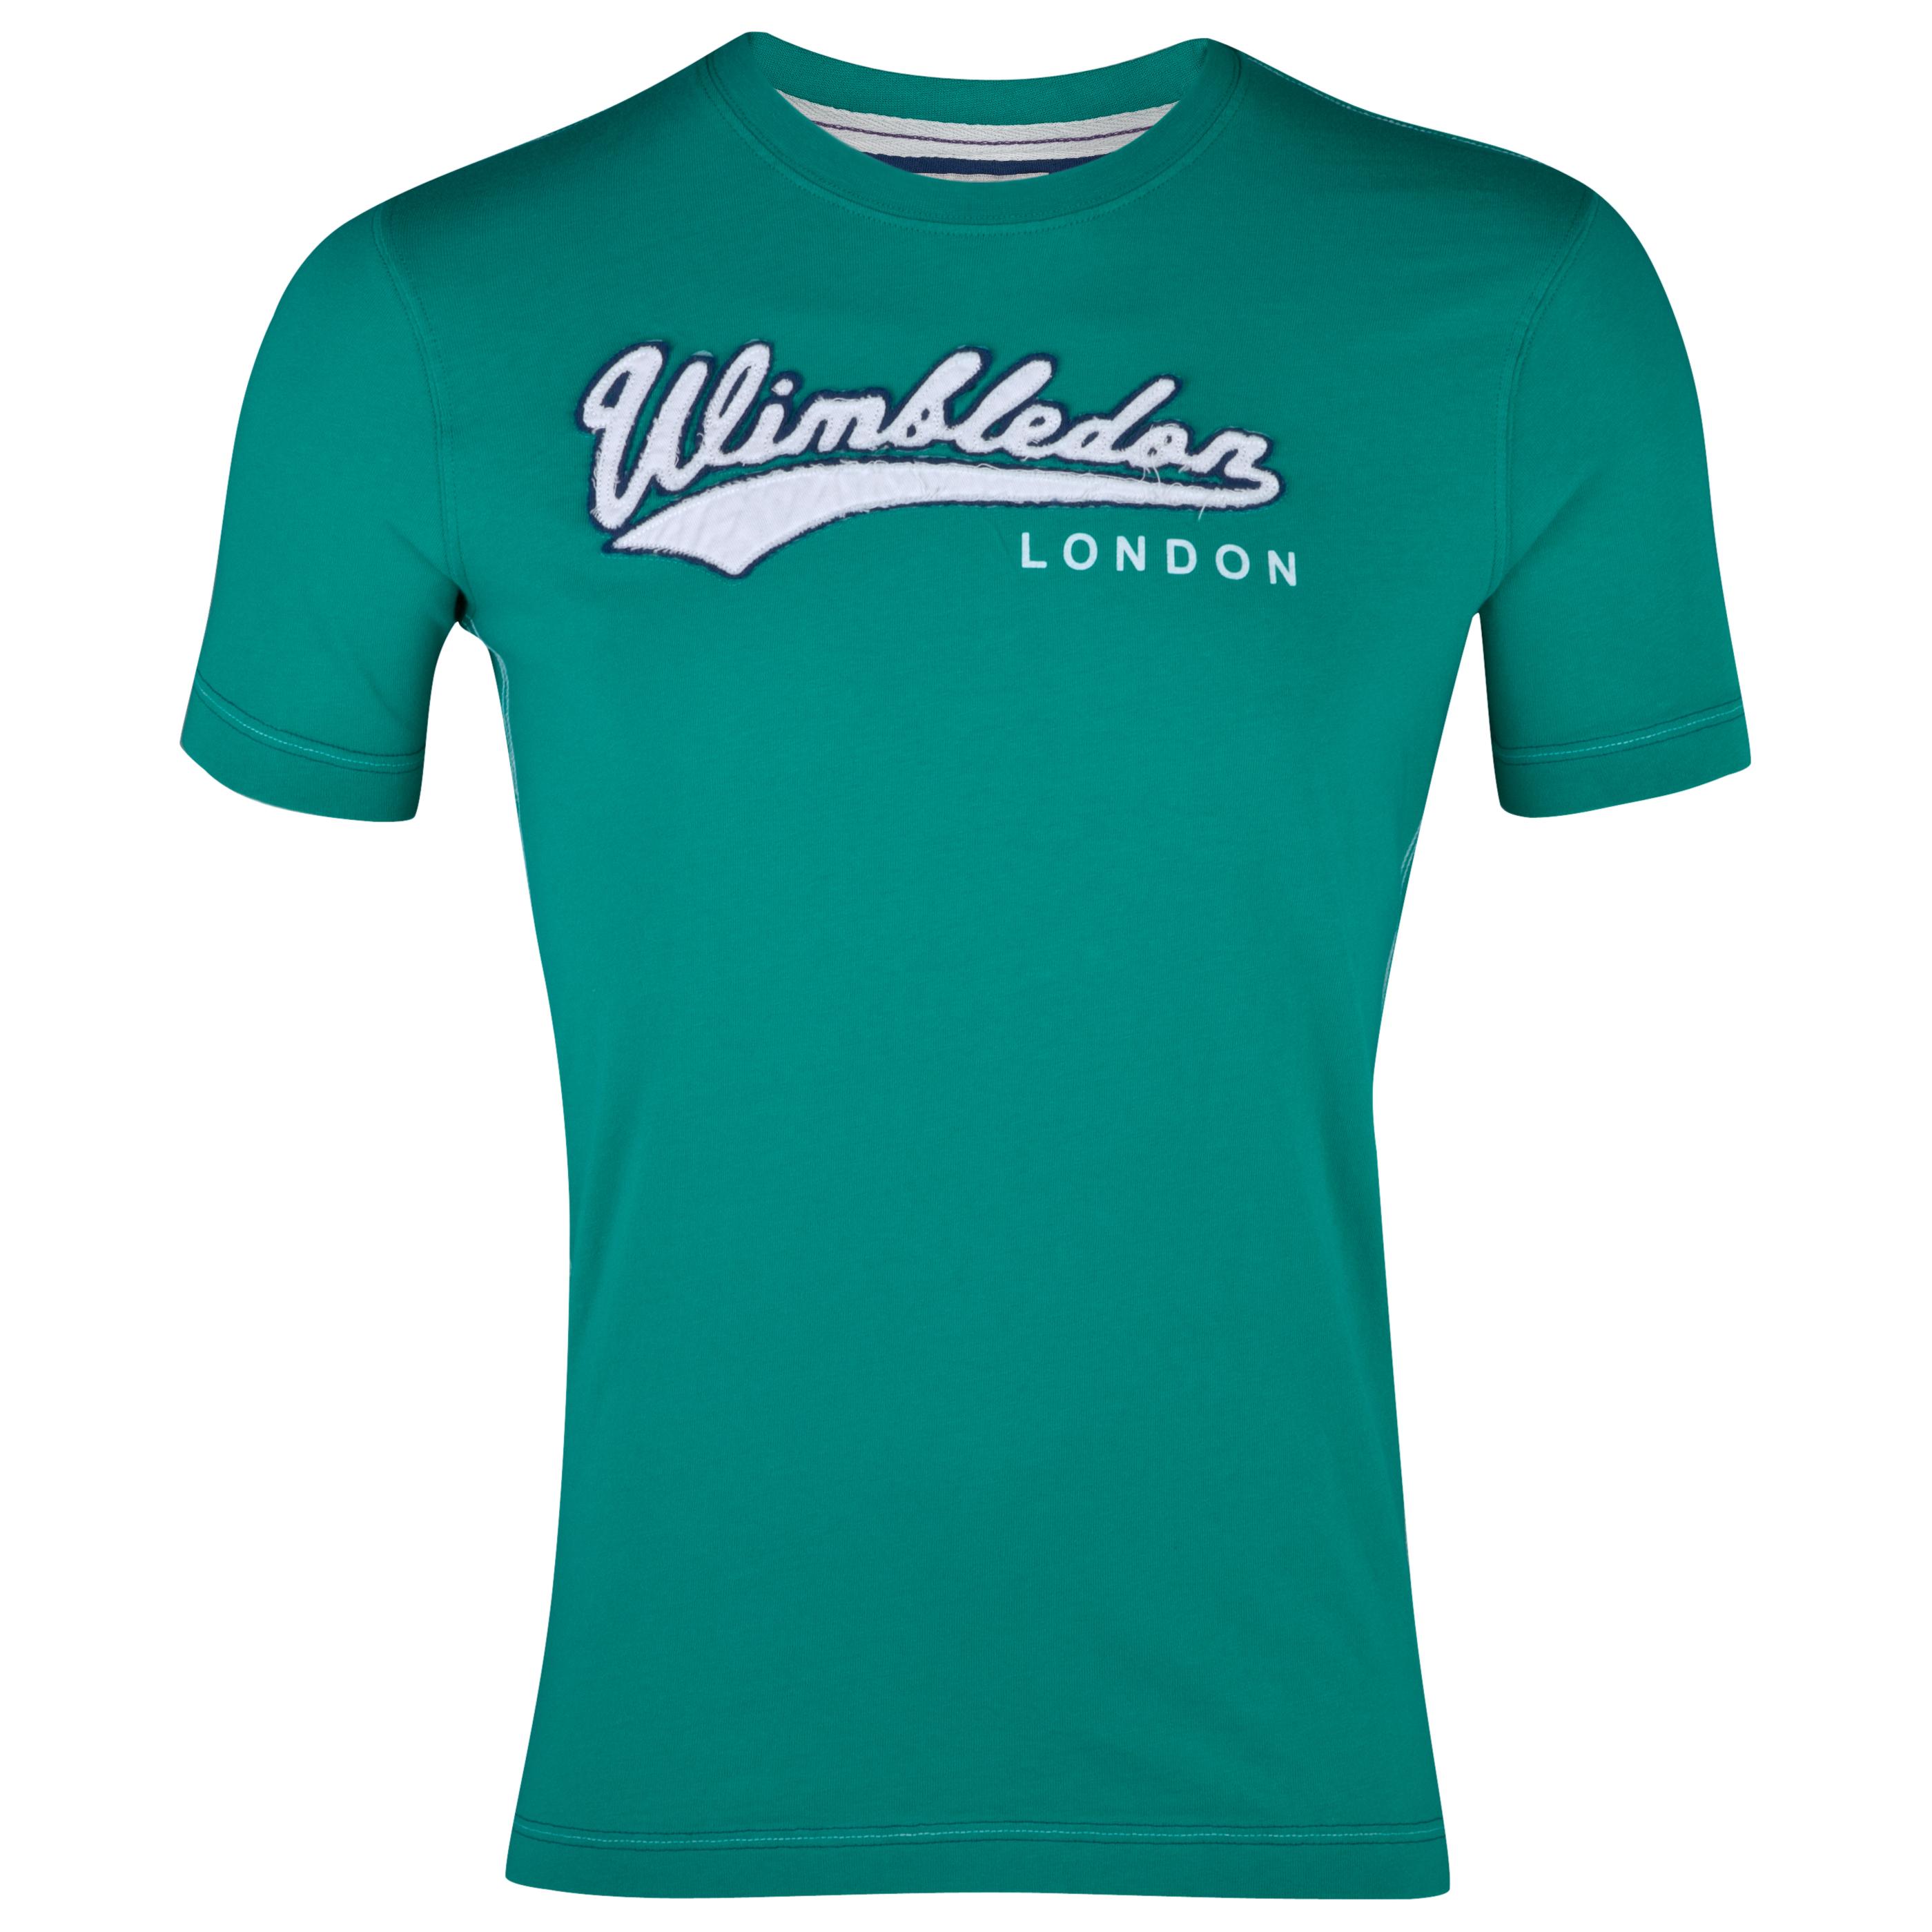 Wimbledon Applique Word T-Shirt - Green